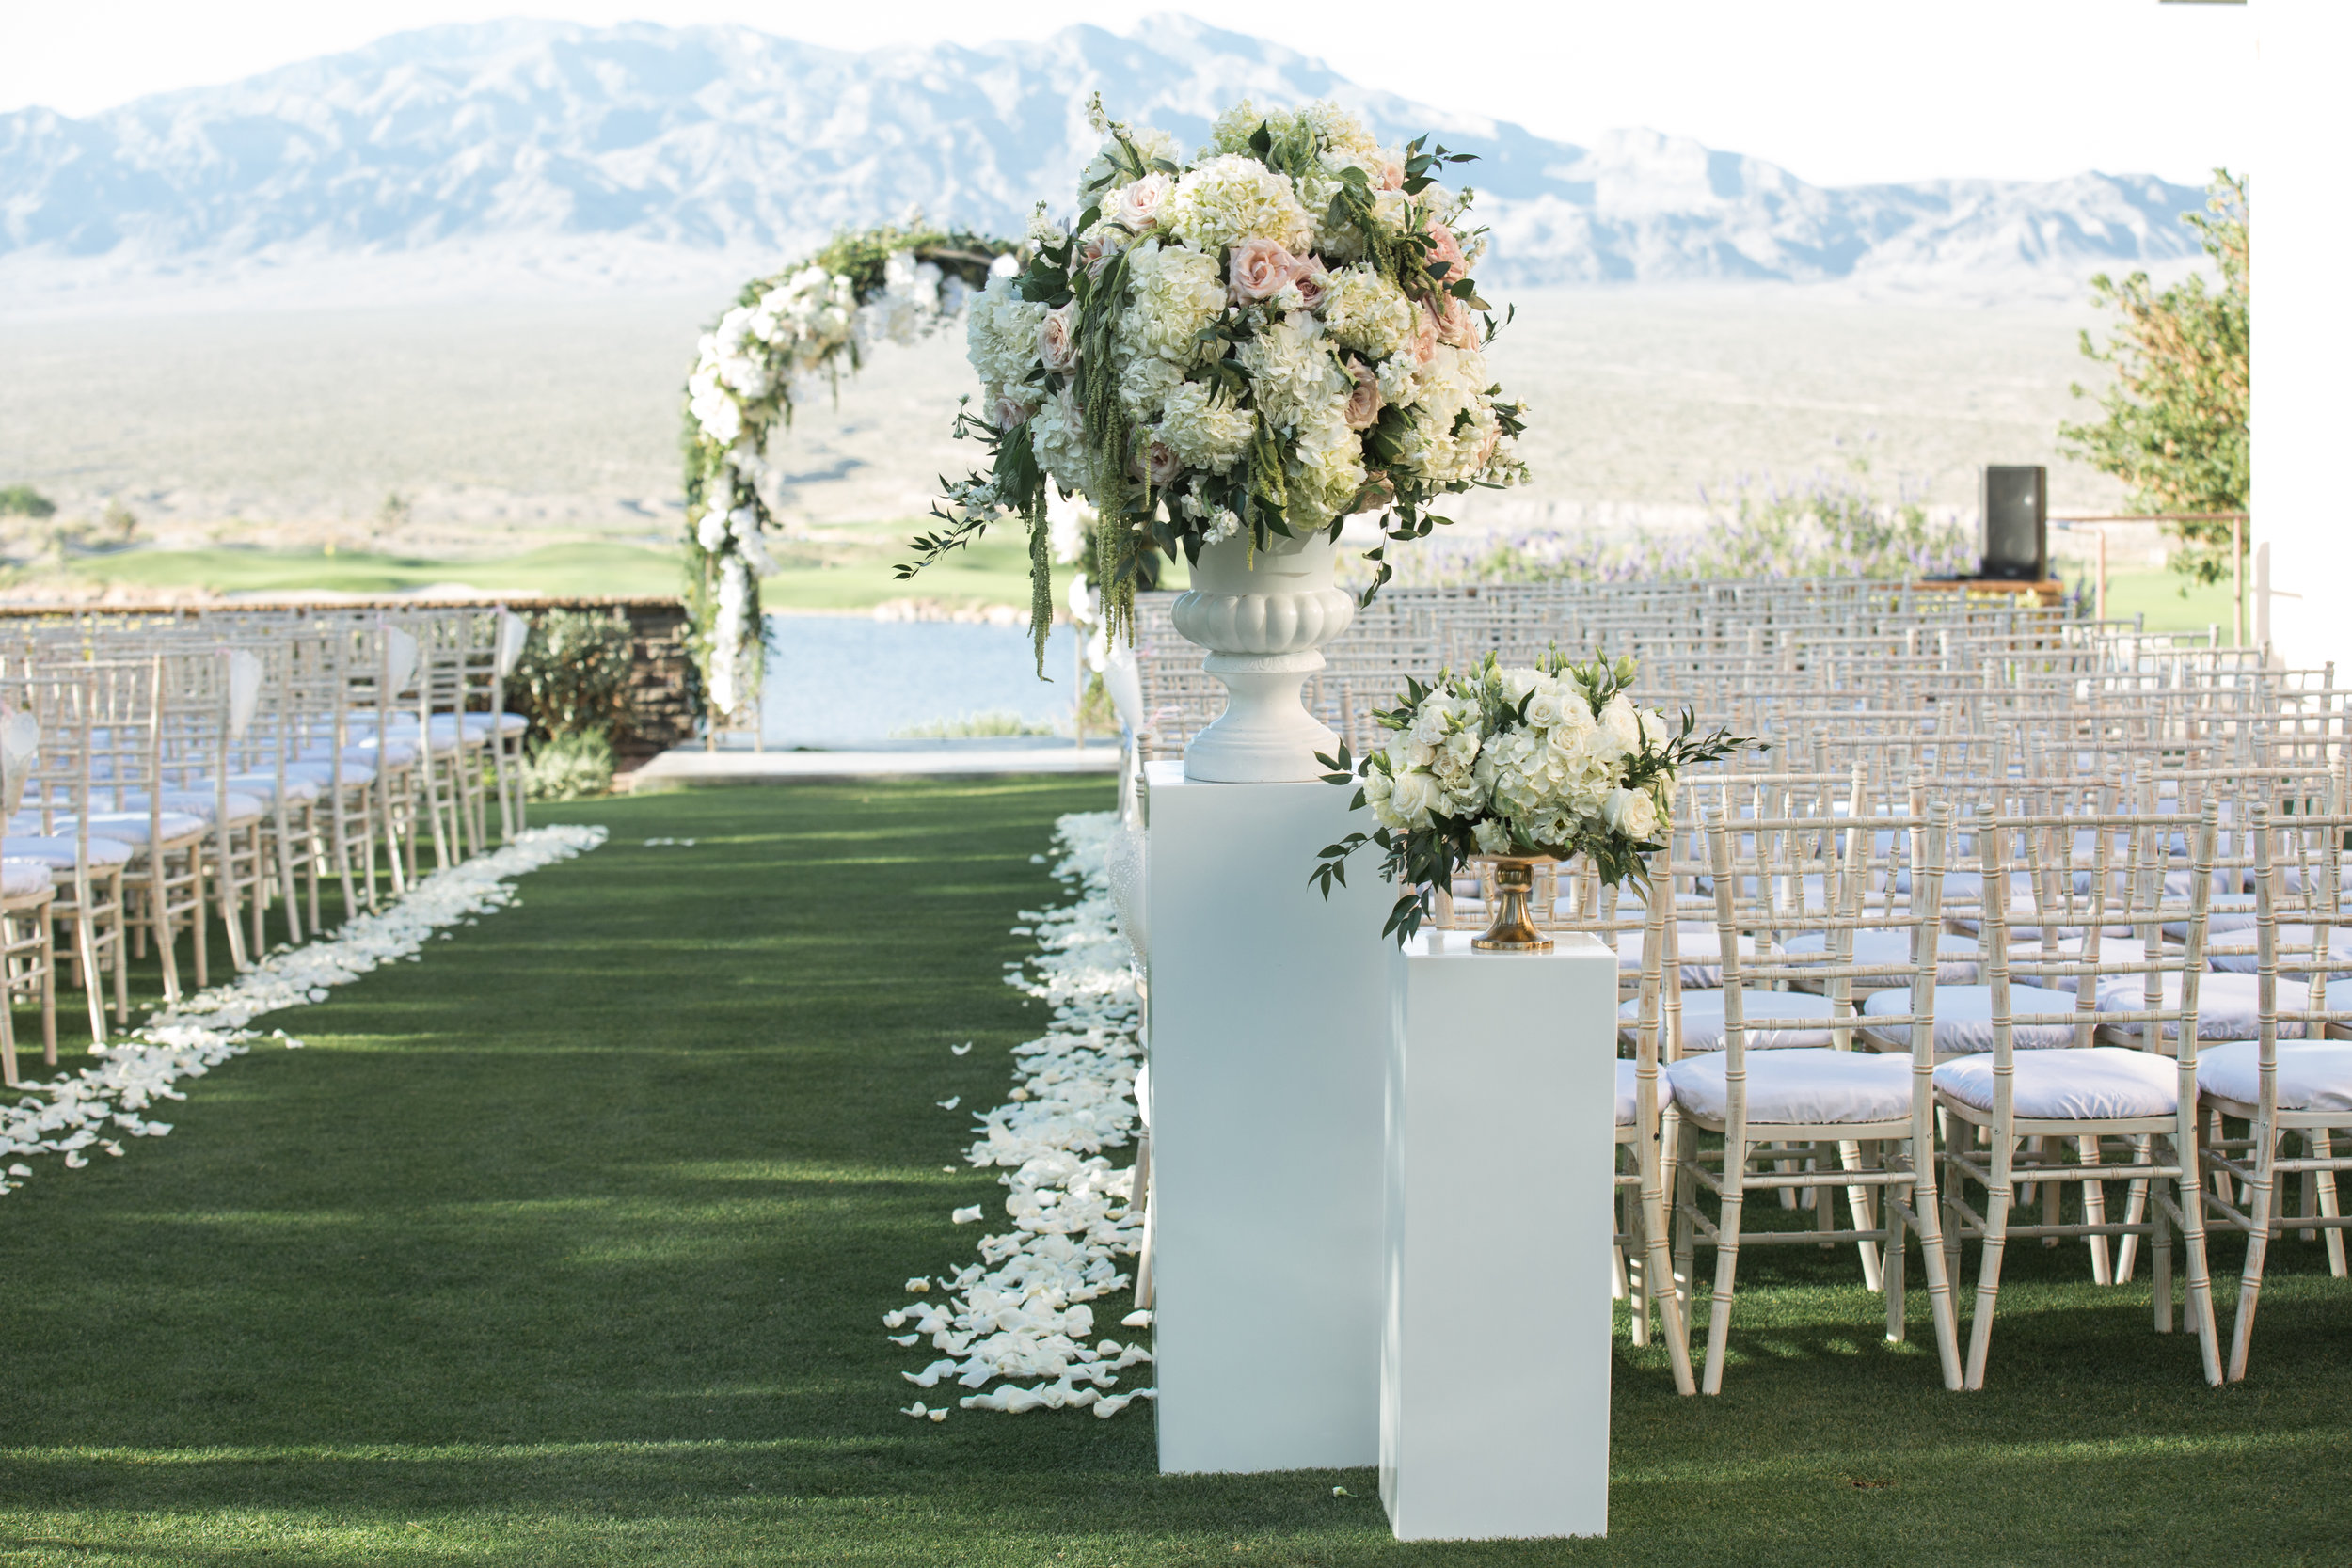 Romantic wedding ceremony on golf course. Luxury Destination Wedding Planning and Event Design by  Andrea Eppolito Events  · Photos by  Stephen Salazar  · Flowers by  Naakiti Floral  ·  Rentals by RSVP · Lighting by  LED Unplugged   · Venue  Paiute Golf Course .  Dress by  Berta  · Shoes by  Jimmy Choo